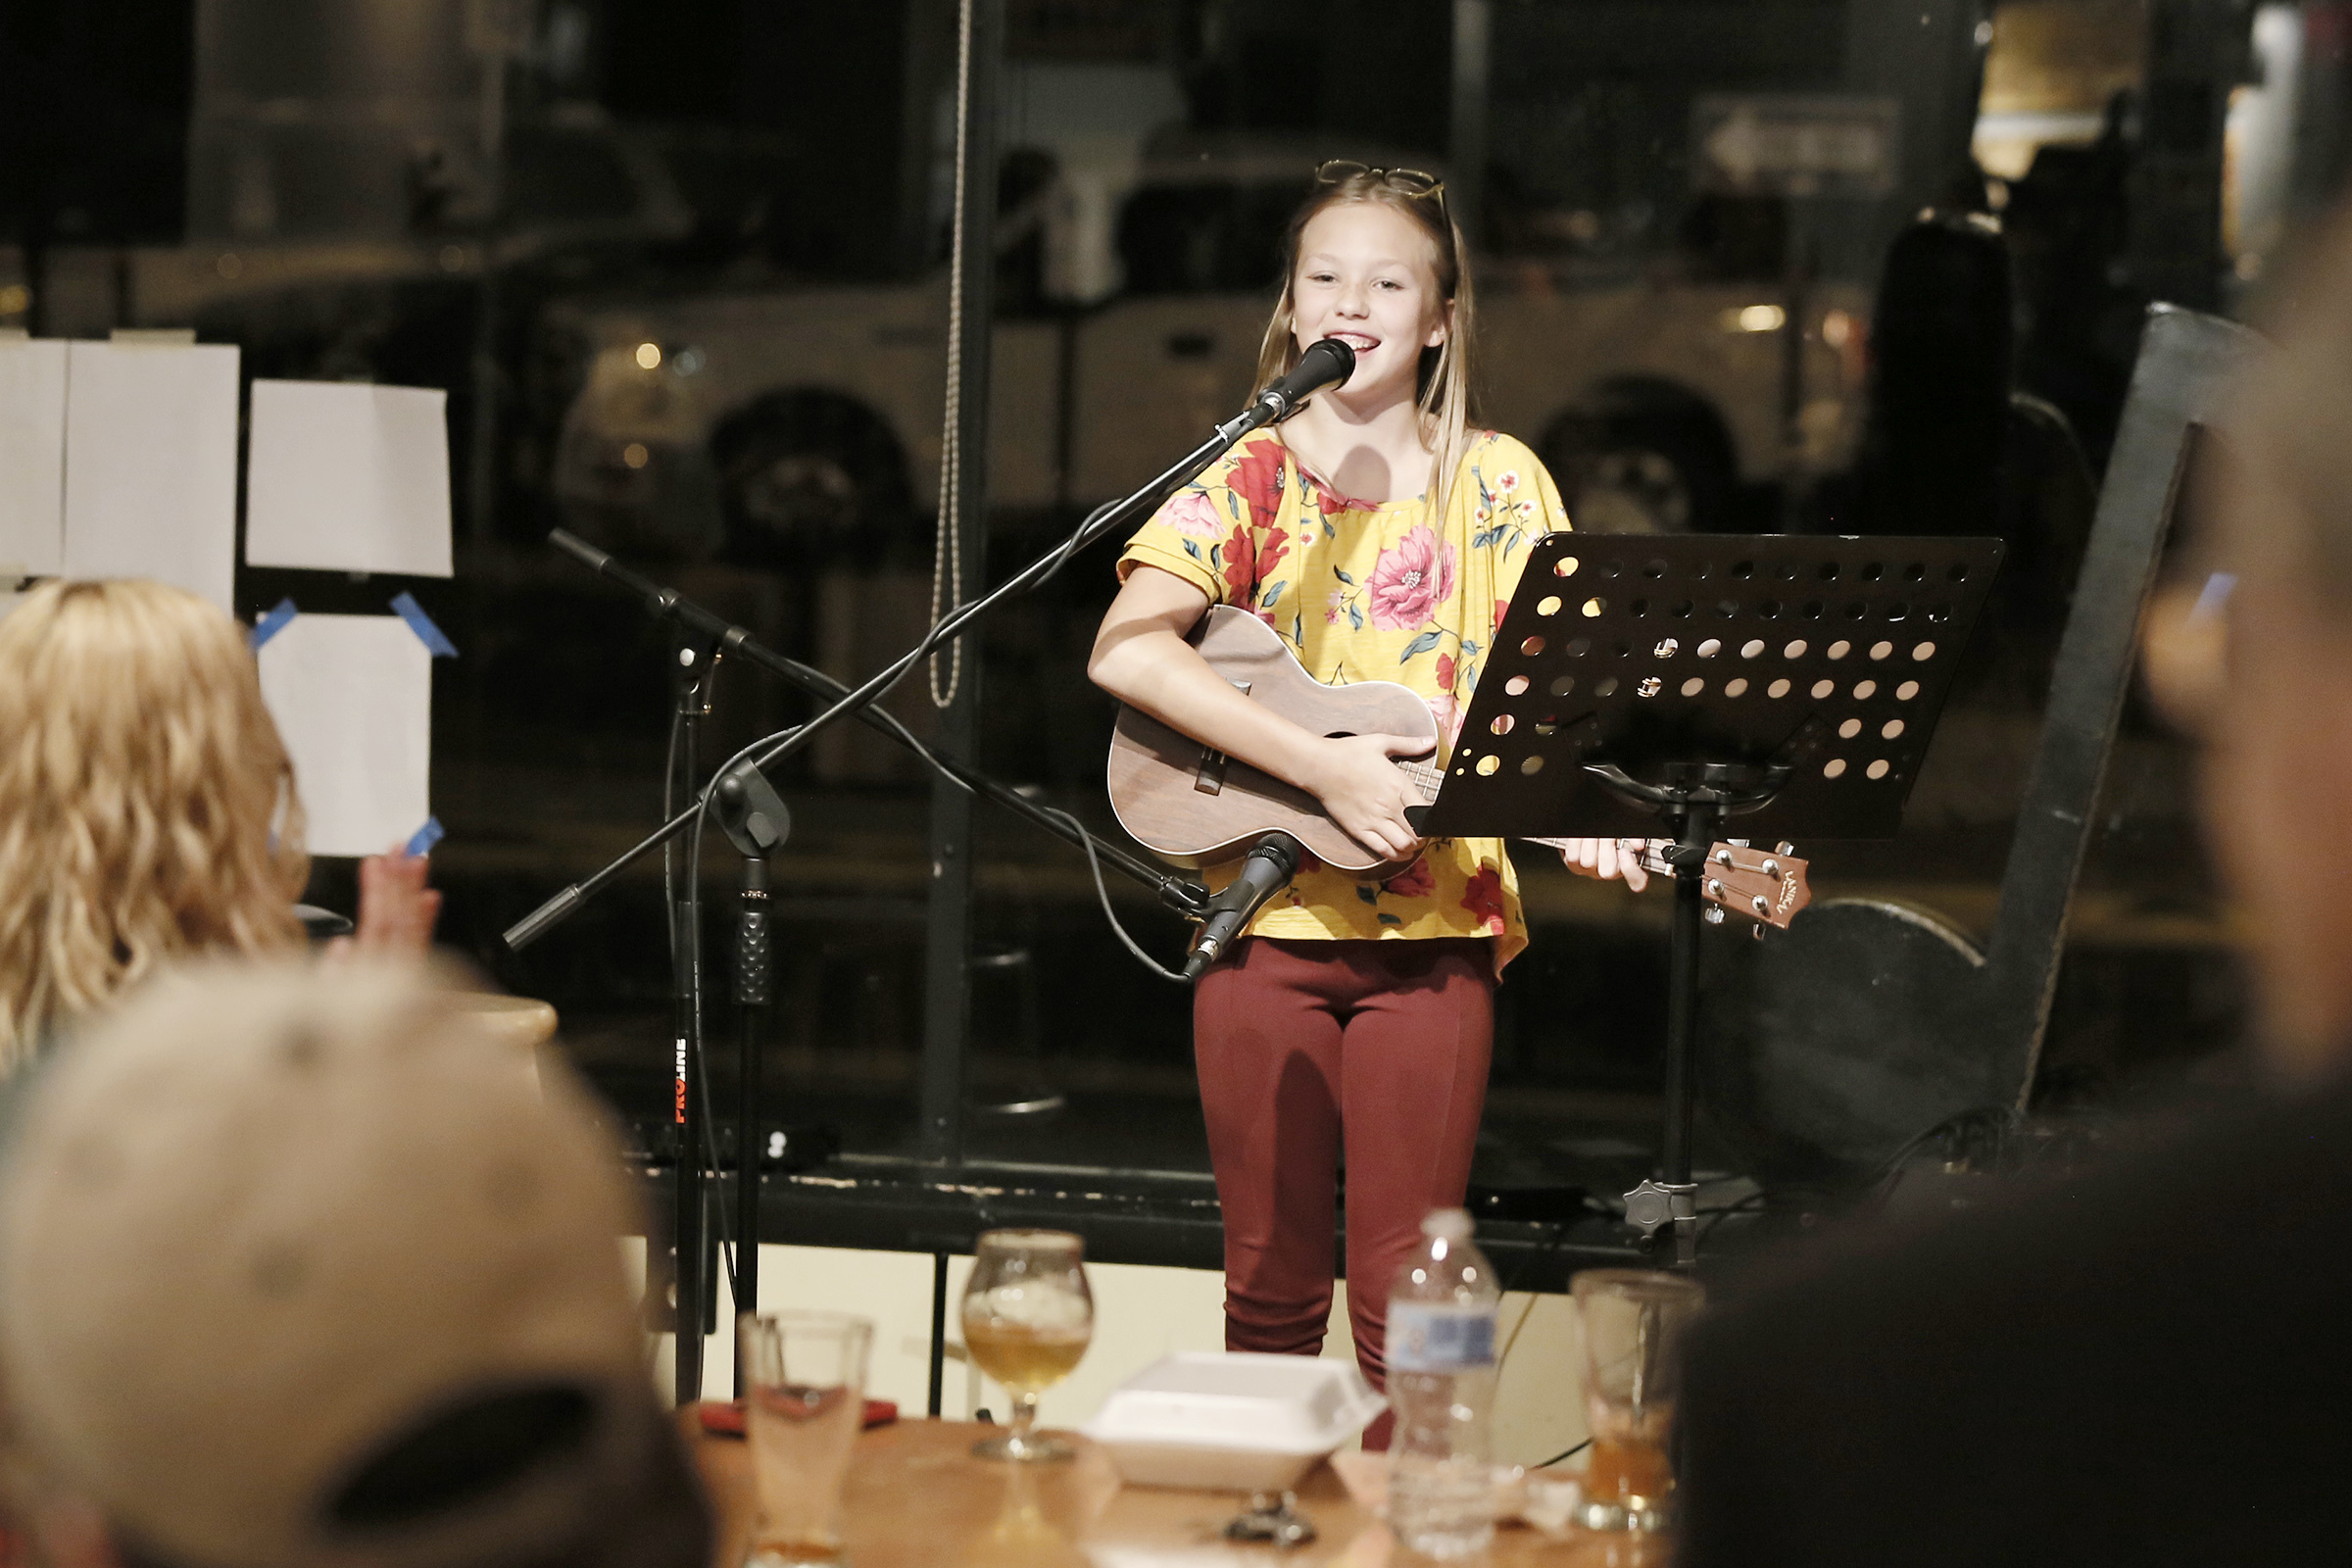 Caroline Smith, 11, of Washington Township, NJ performs during open mic night at Human Village Brewing Co. in Pitman on September 28